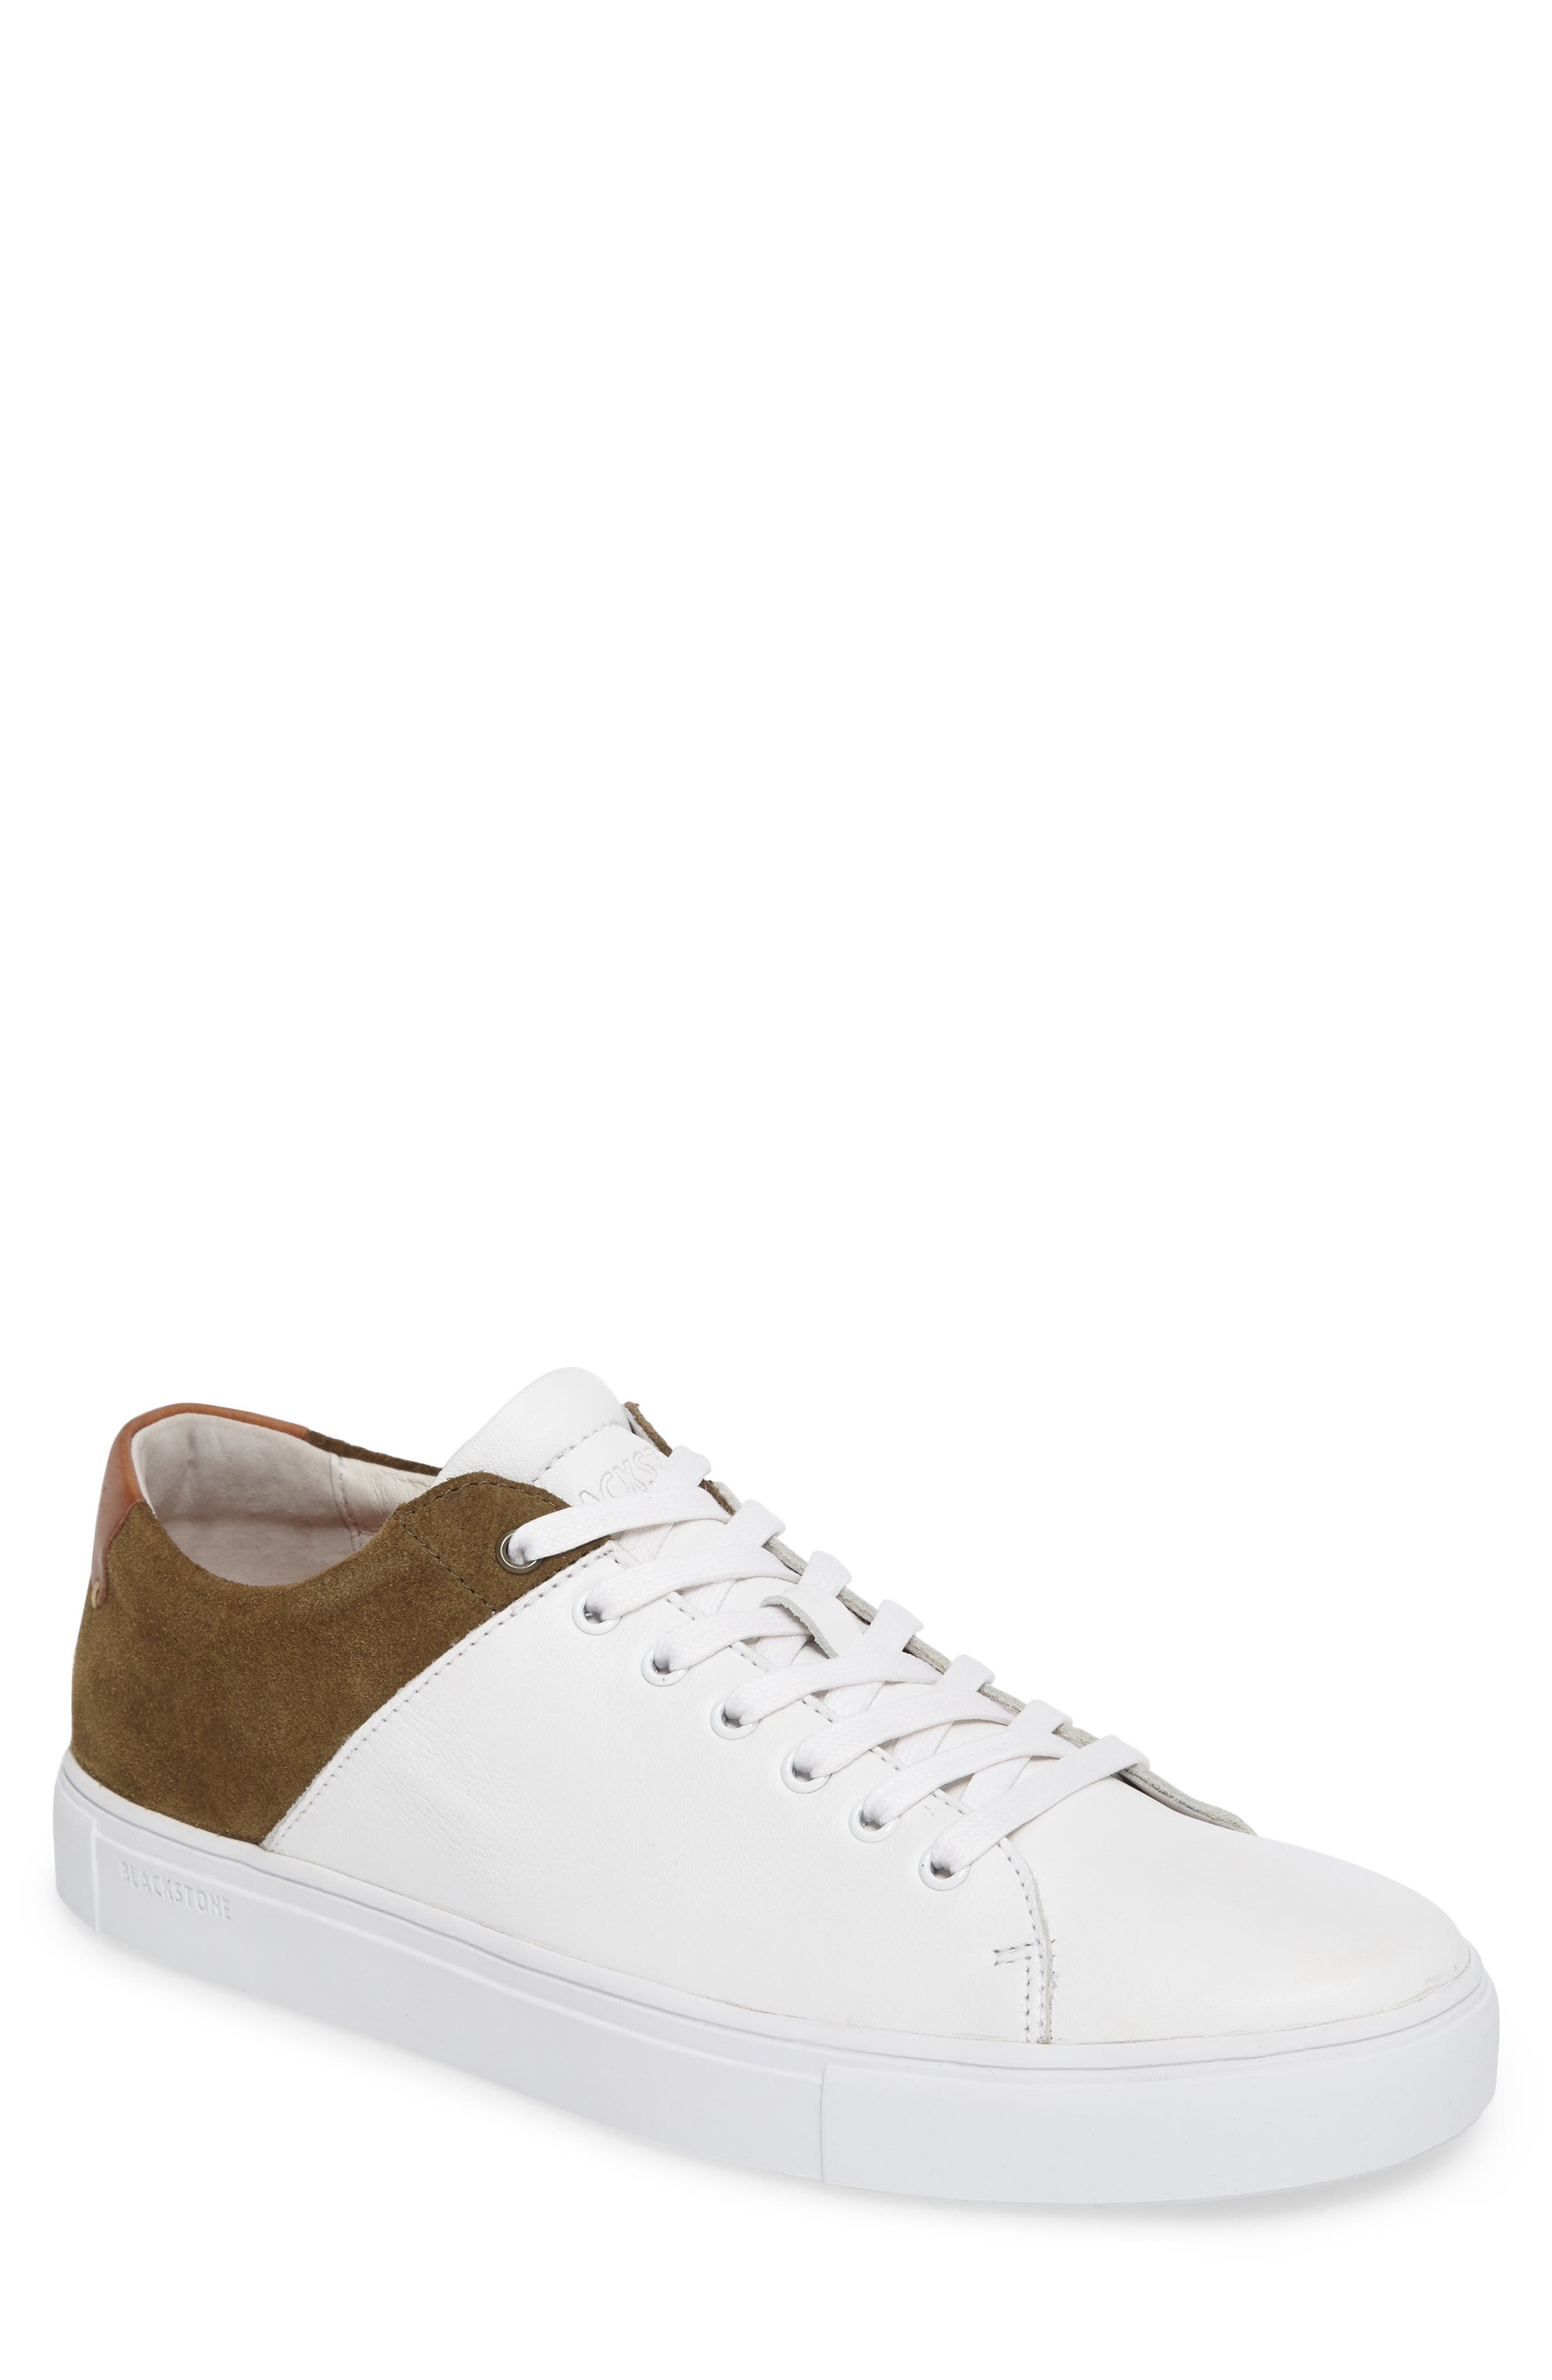 NM03 Two-Tone Sneaker,                         Main,                         color, White/ Olive Leather